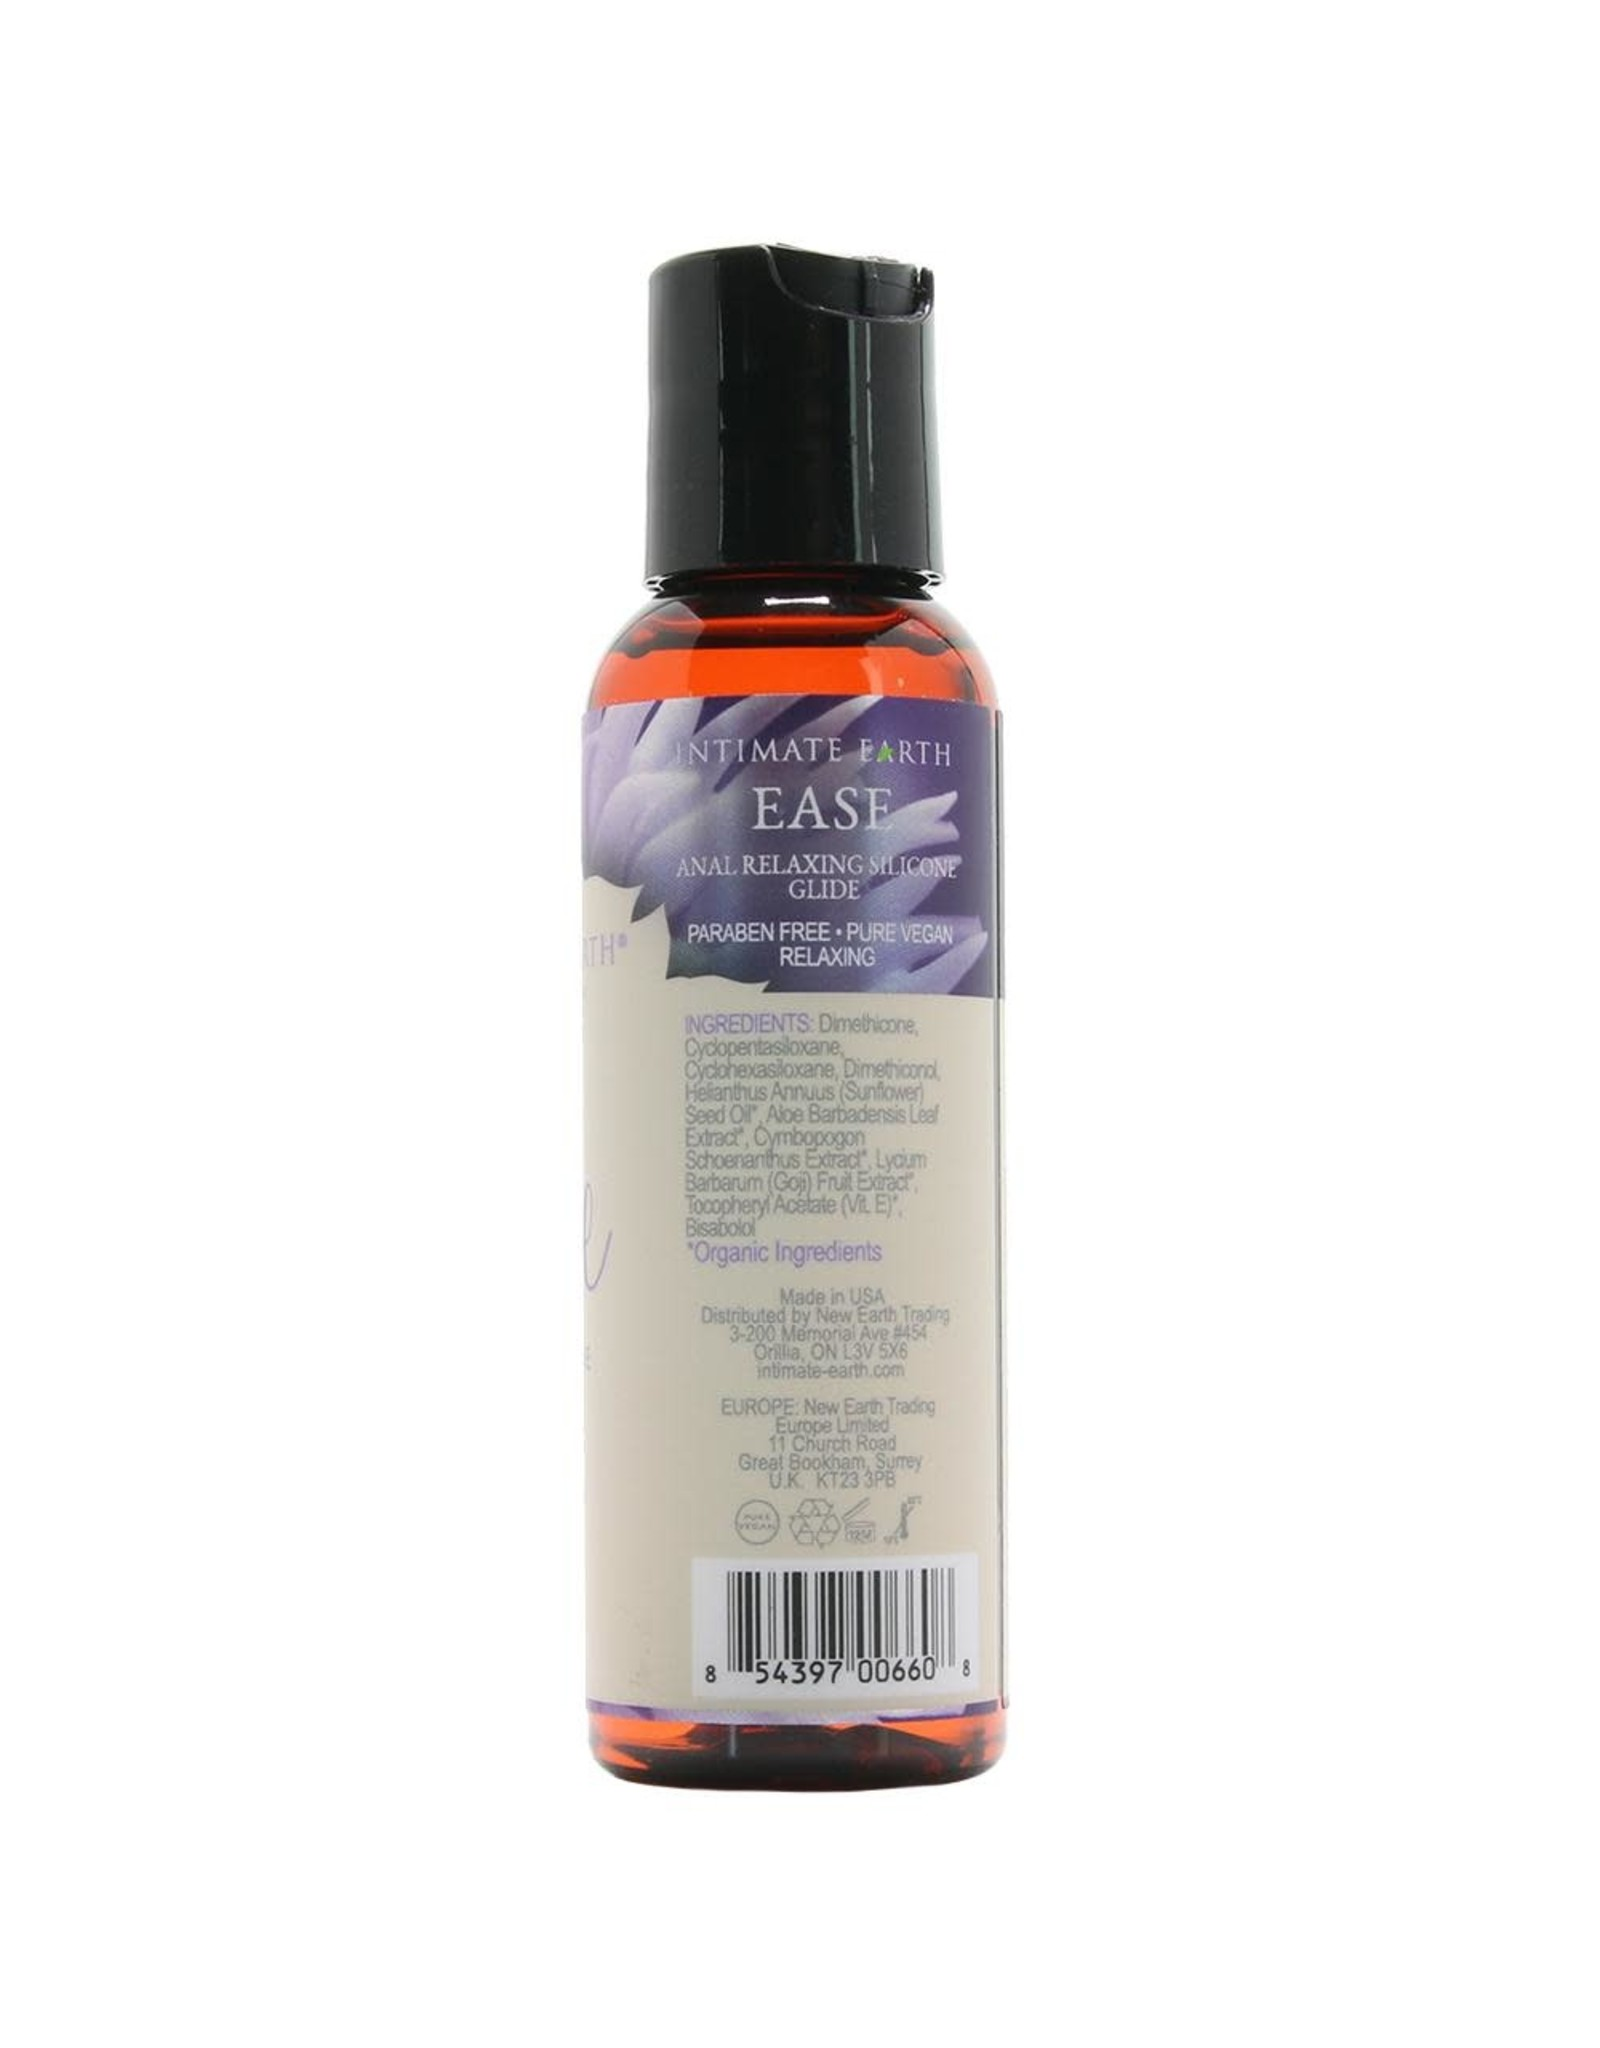 Intimate Earth Intimate Earth - Ease Anal Silicone Glide 2oz